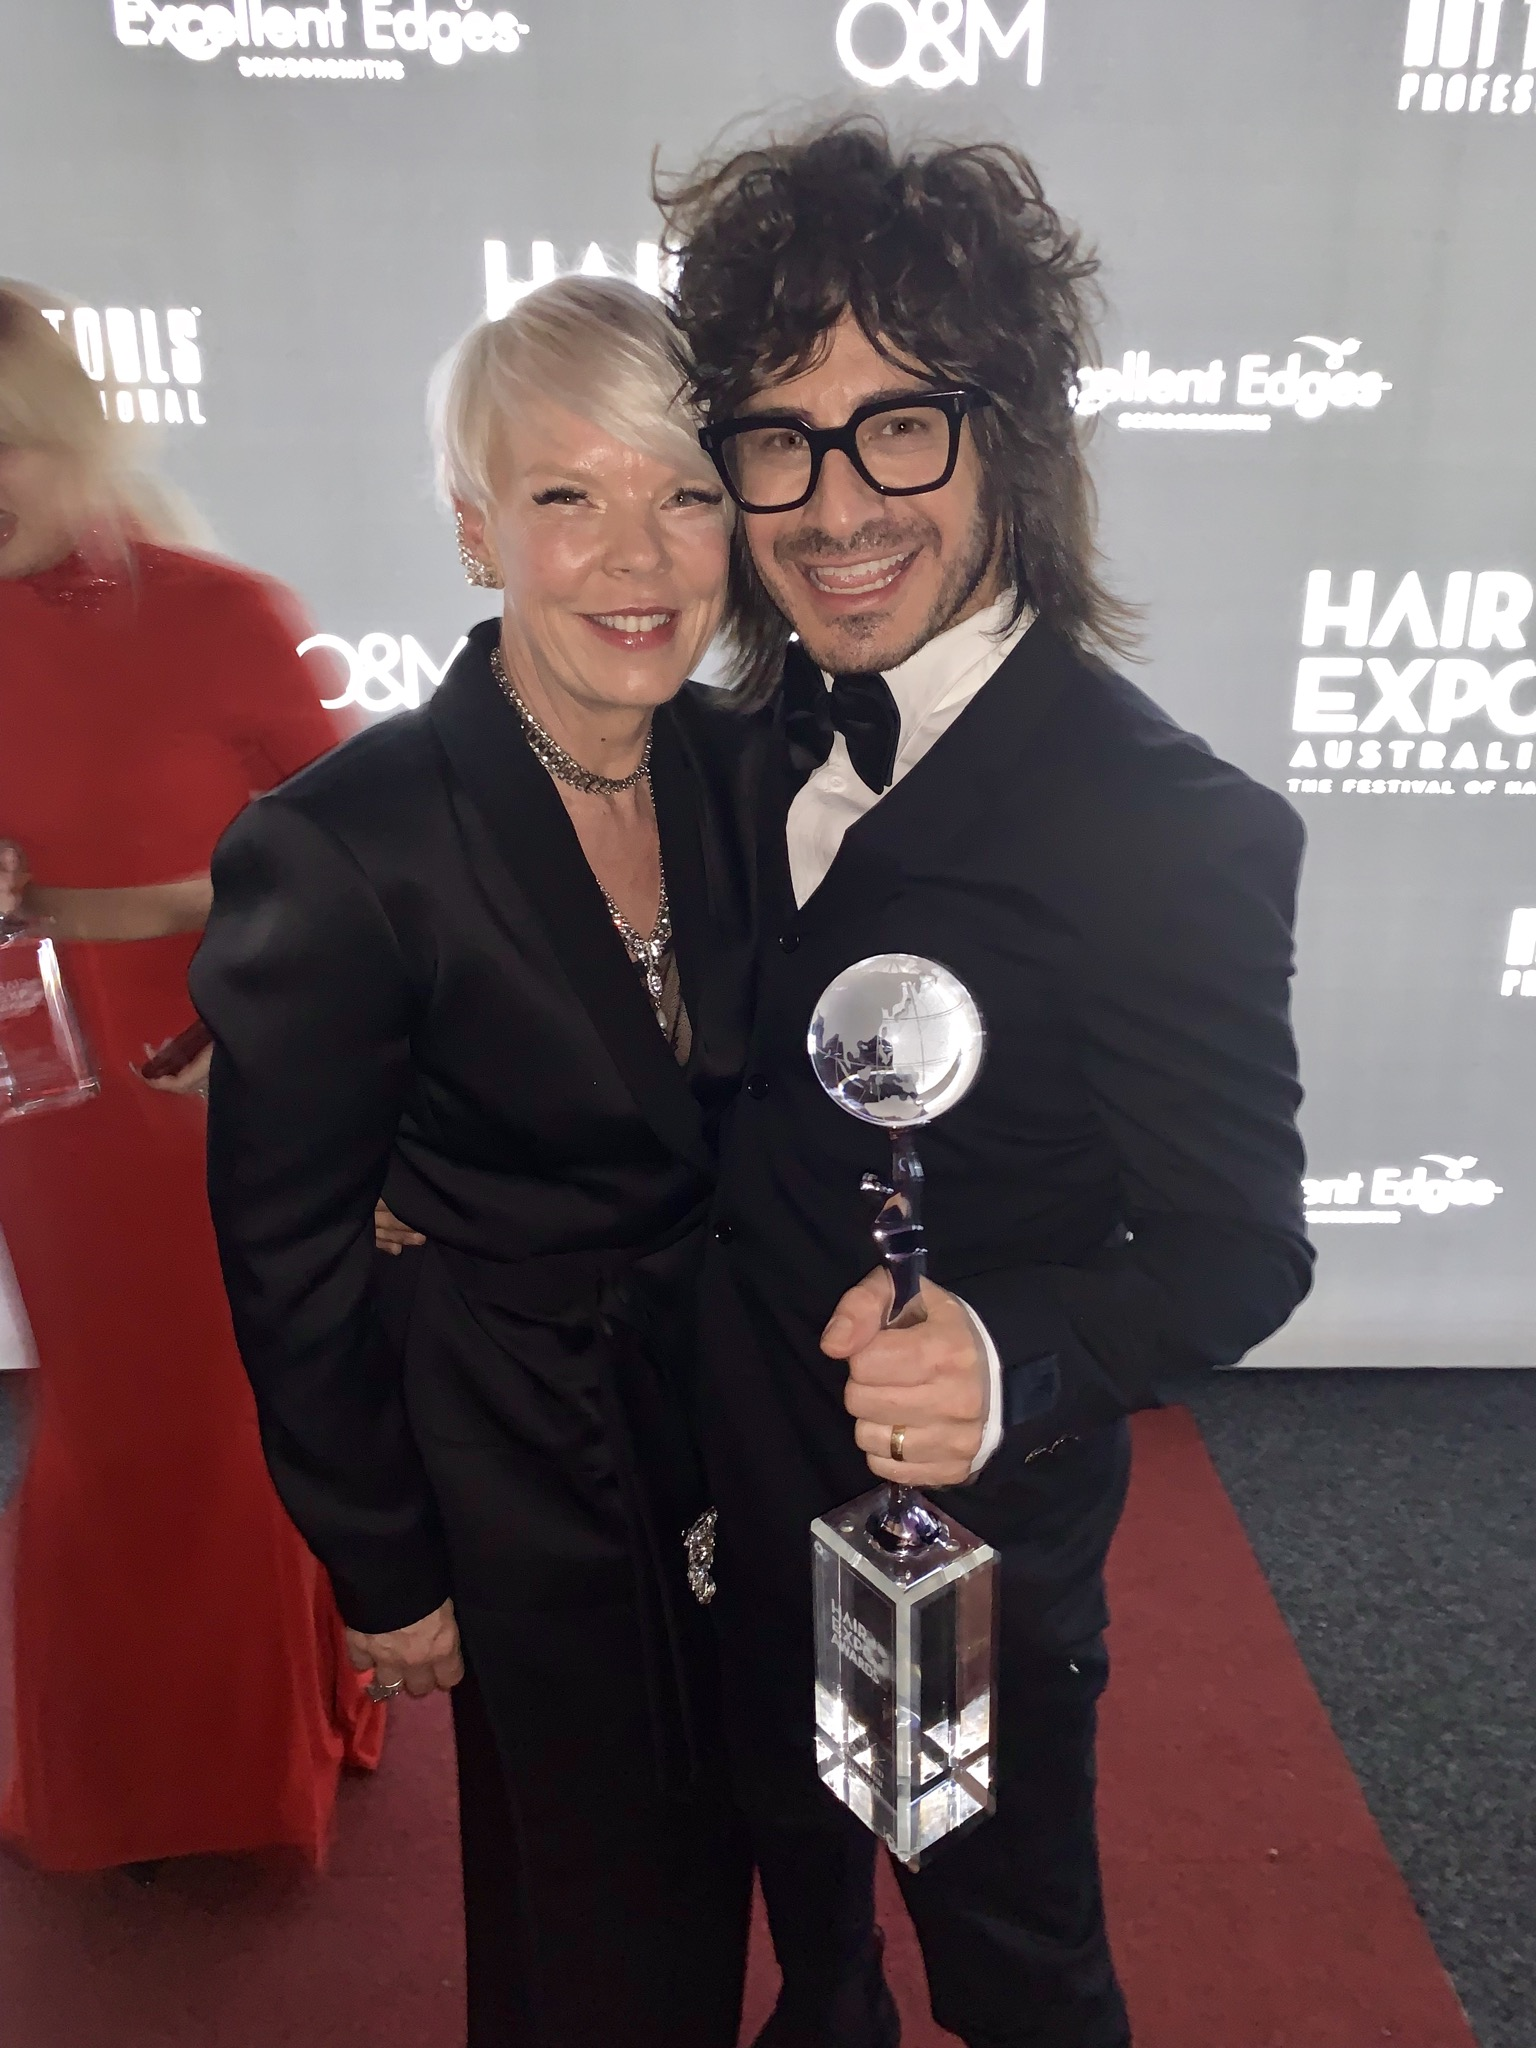 Pato with TV celebrity stylist Tabatha Coffey who was one of the judges at the 2019 Hair Expo Awards